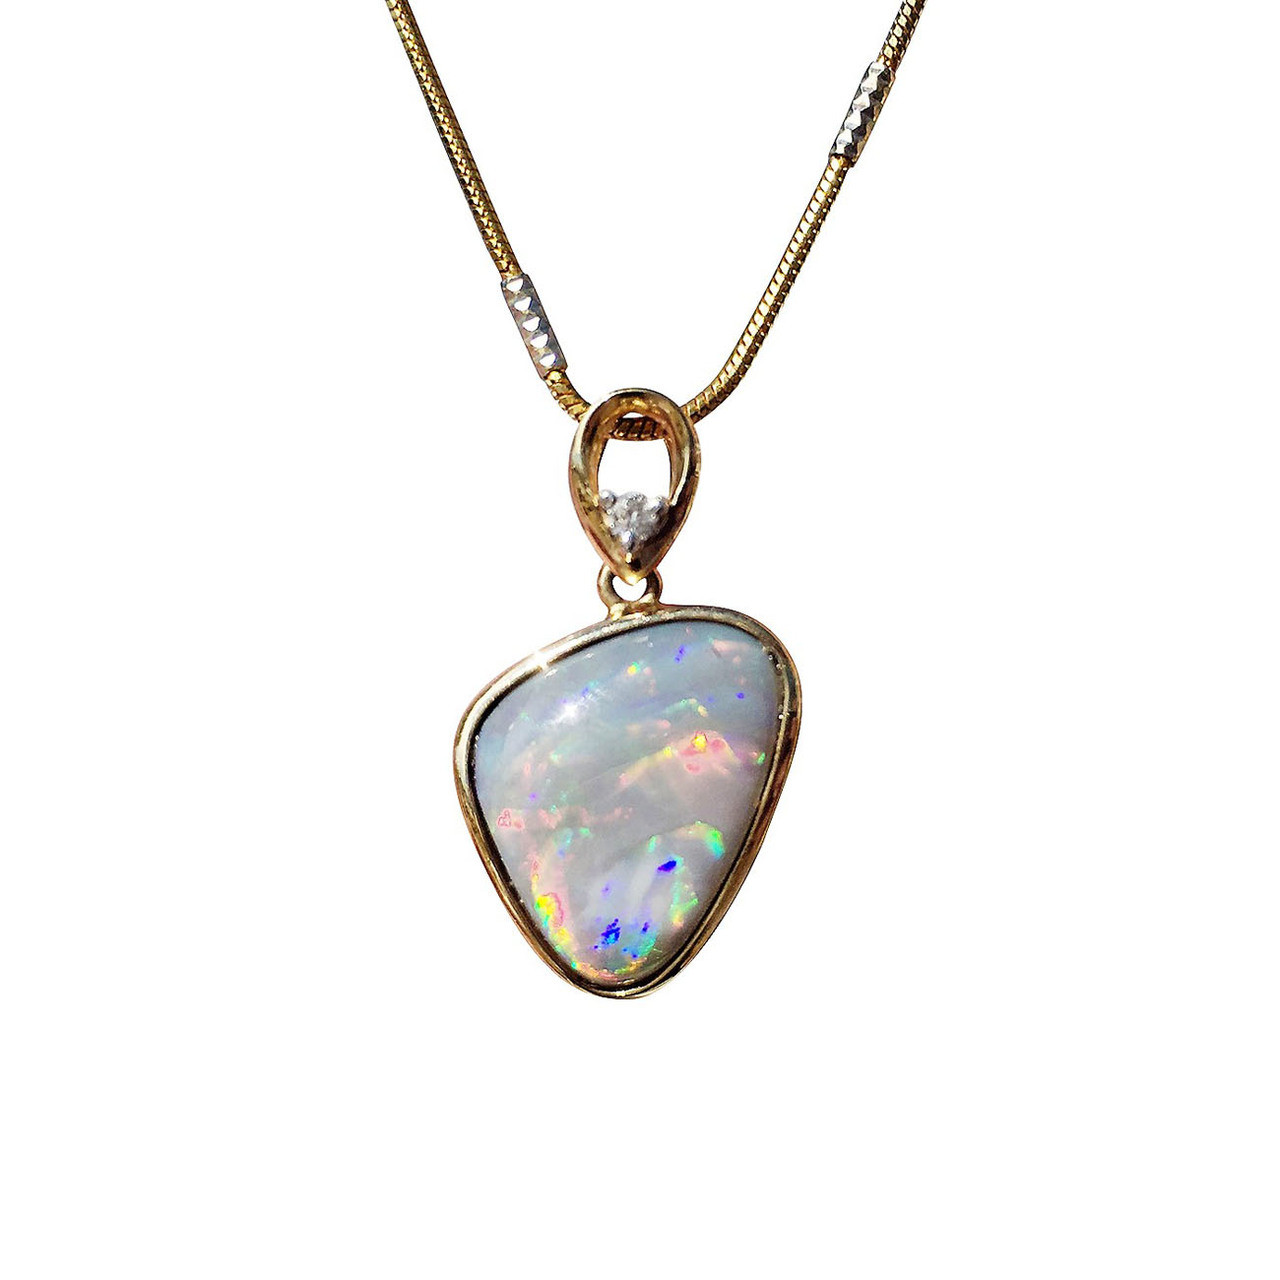 government australia fine pendent product site in finejewelryopals official necklace opals black heritage jewelry from opal